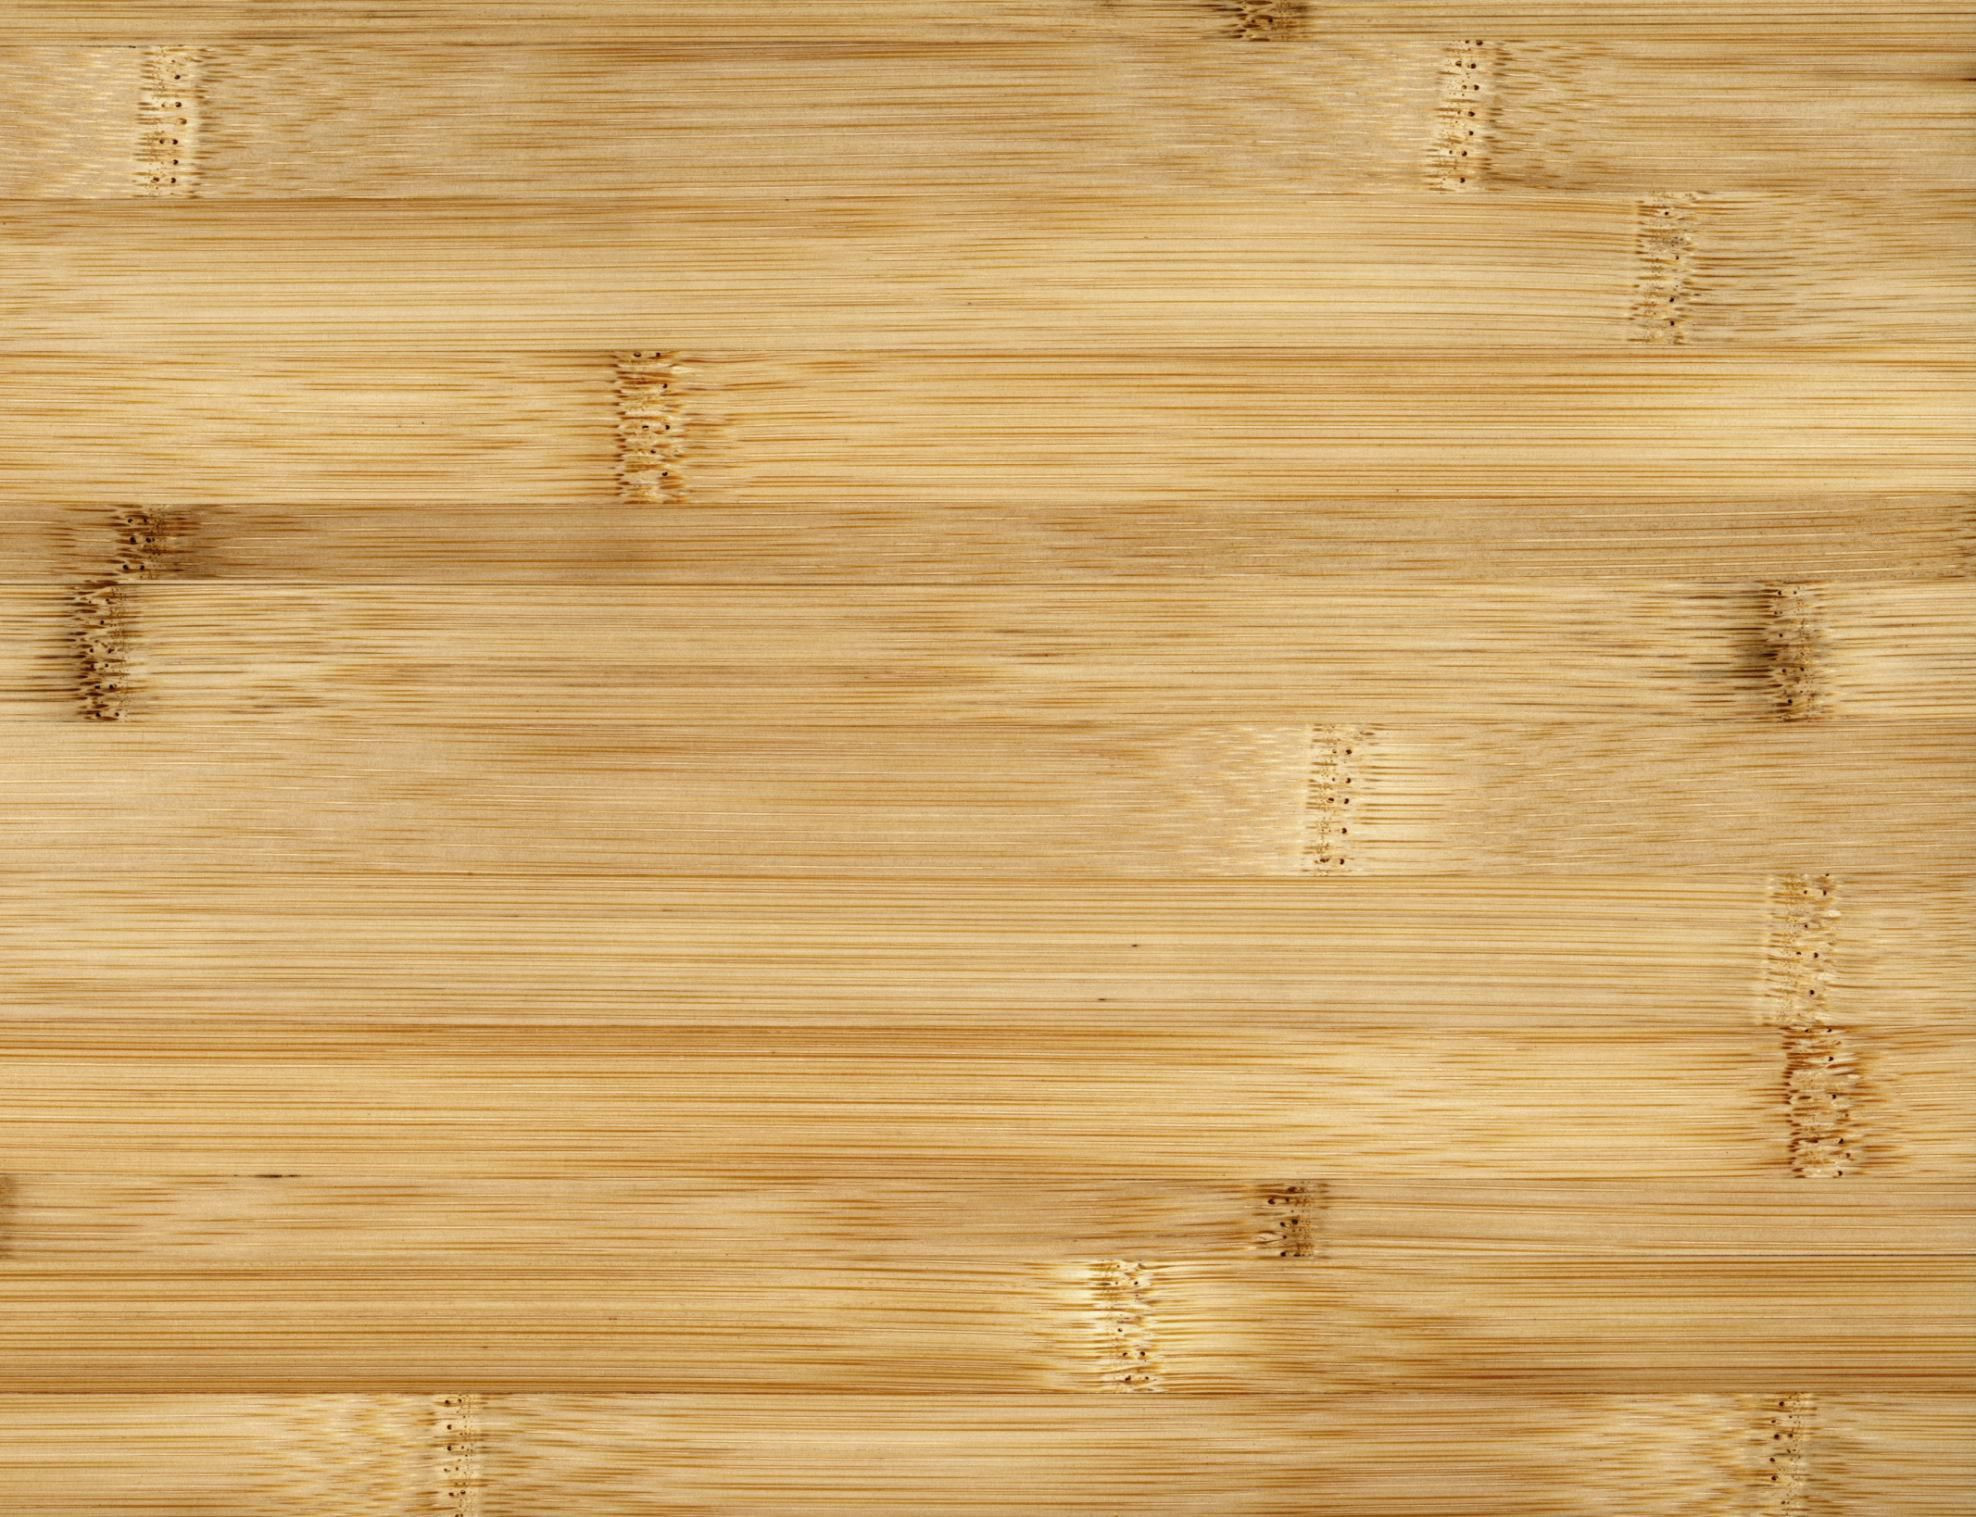 hardwood floor epoxy filler of how to clean bamboo flooring pertaining to 200266305 001 56a2fd815f9b58b7d0d000cd